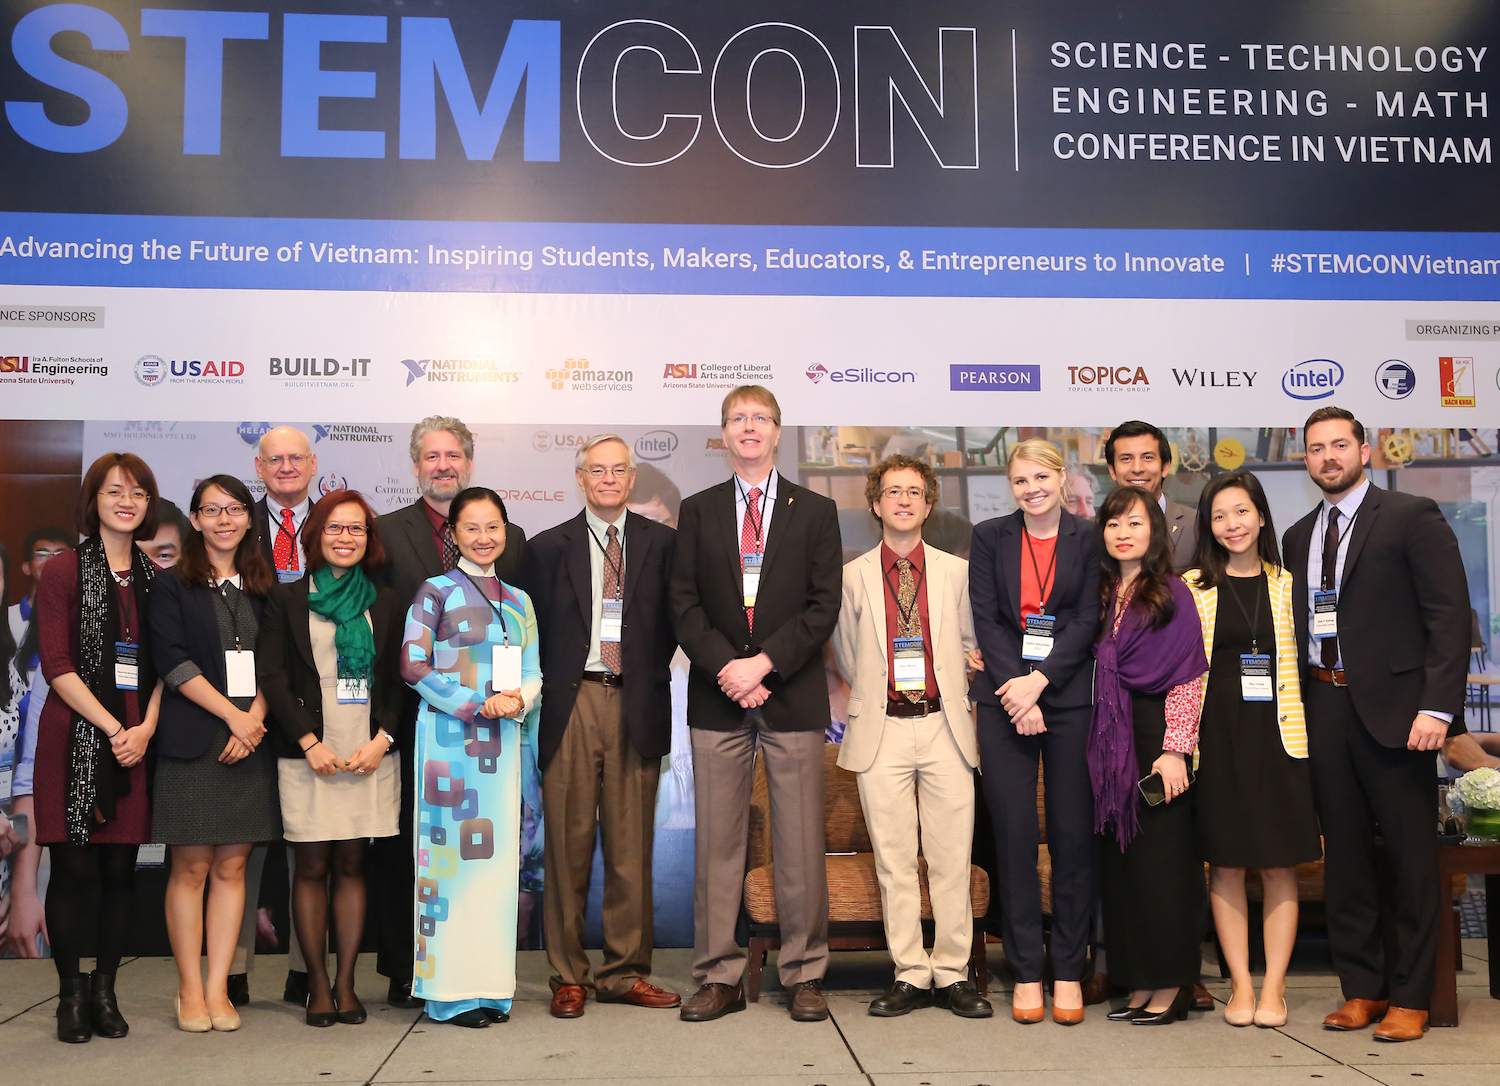 "Photo of group standing with a caption of ""ASU staff with USAID Vietnam Social Development Unit Chief Ezra Simon (Sixth from right) at STEMCON. From Left:  Huong Nguyen, Thanh Ta, Marcus Ingle, Thao Tran, David Benson, Phuong Nguyen, Scott Danielson, Kyle Squires, Ezra Simon(USAID), Sasha Stinchfield, Phuong Anh Tran, Octavio Heredia, Cristal Ngo, Jose Quiroga. (Photo courtesy of HEEAP.)"""